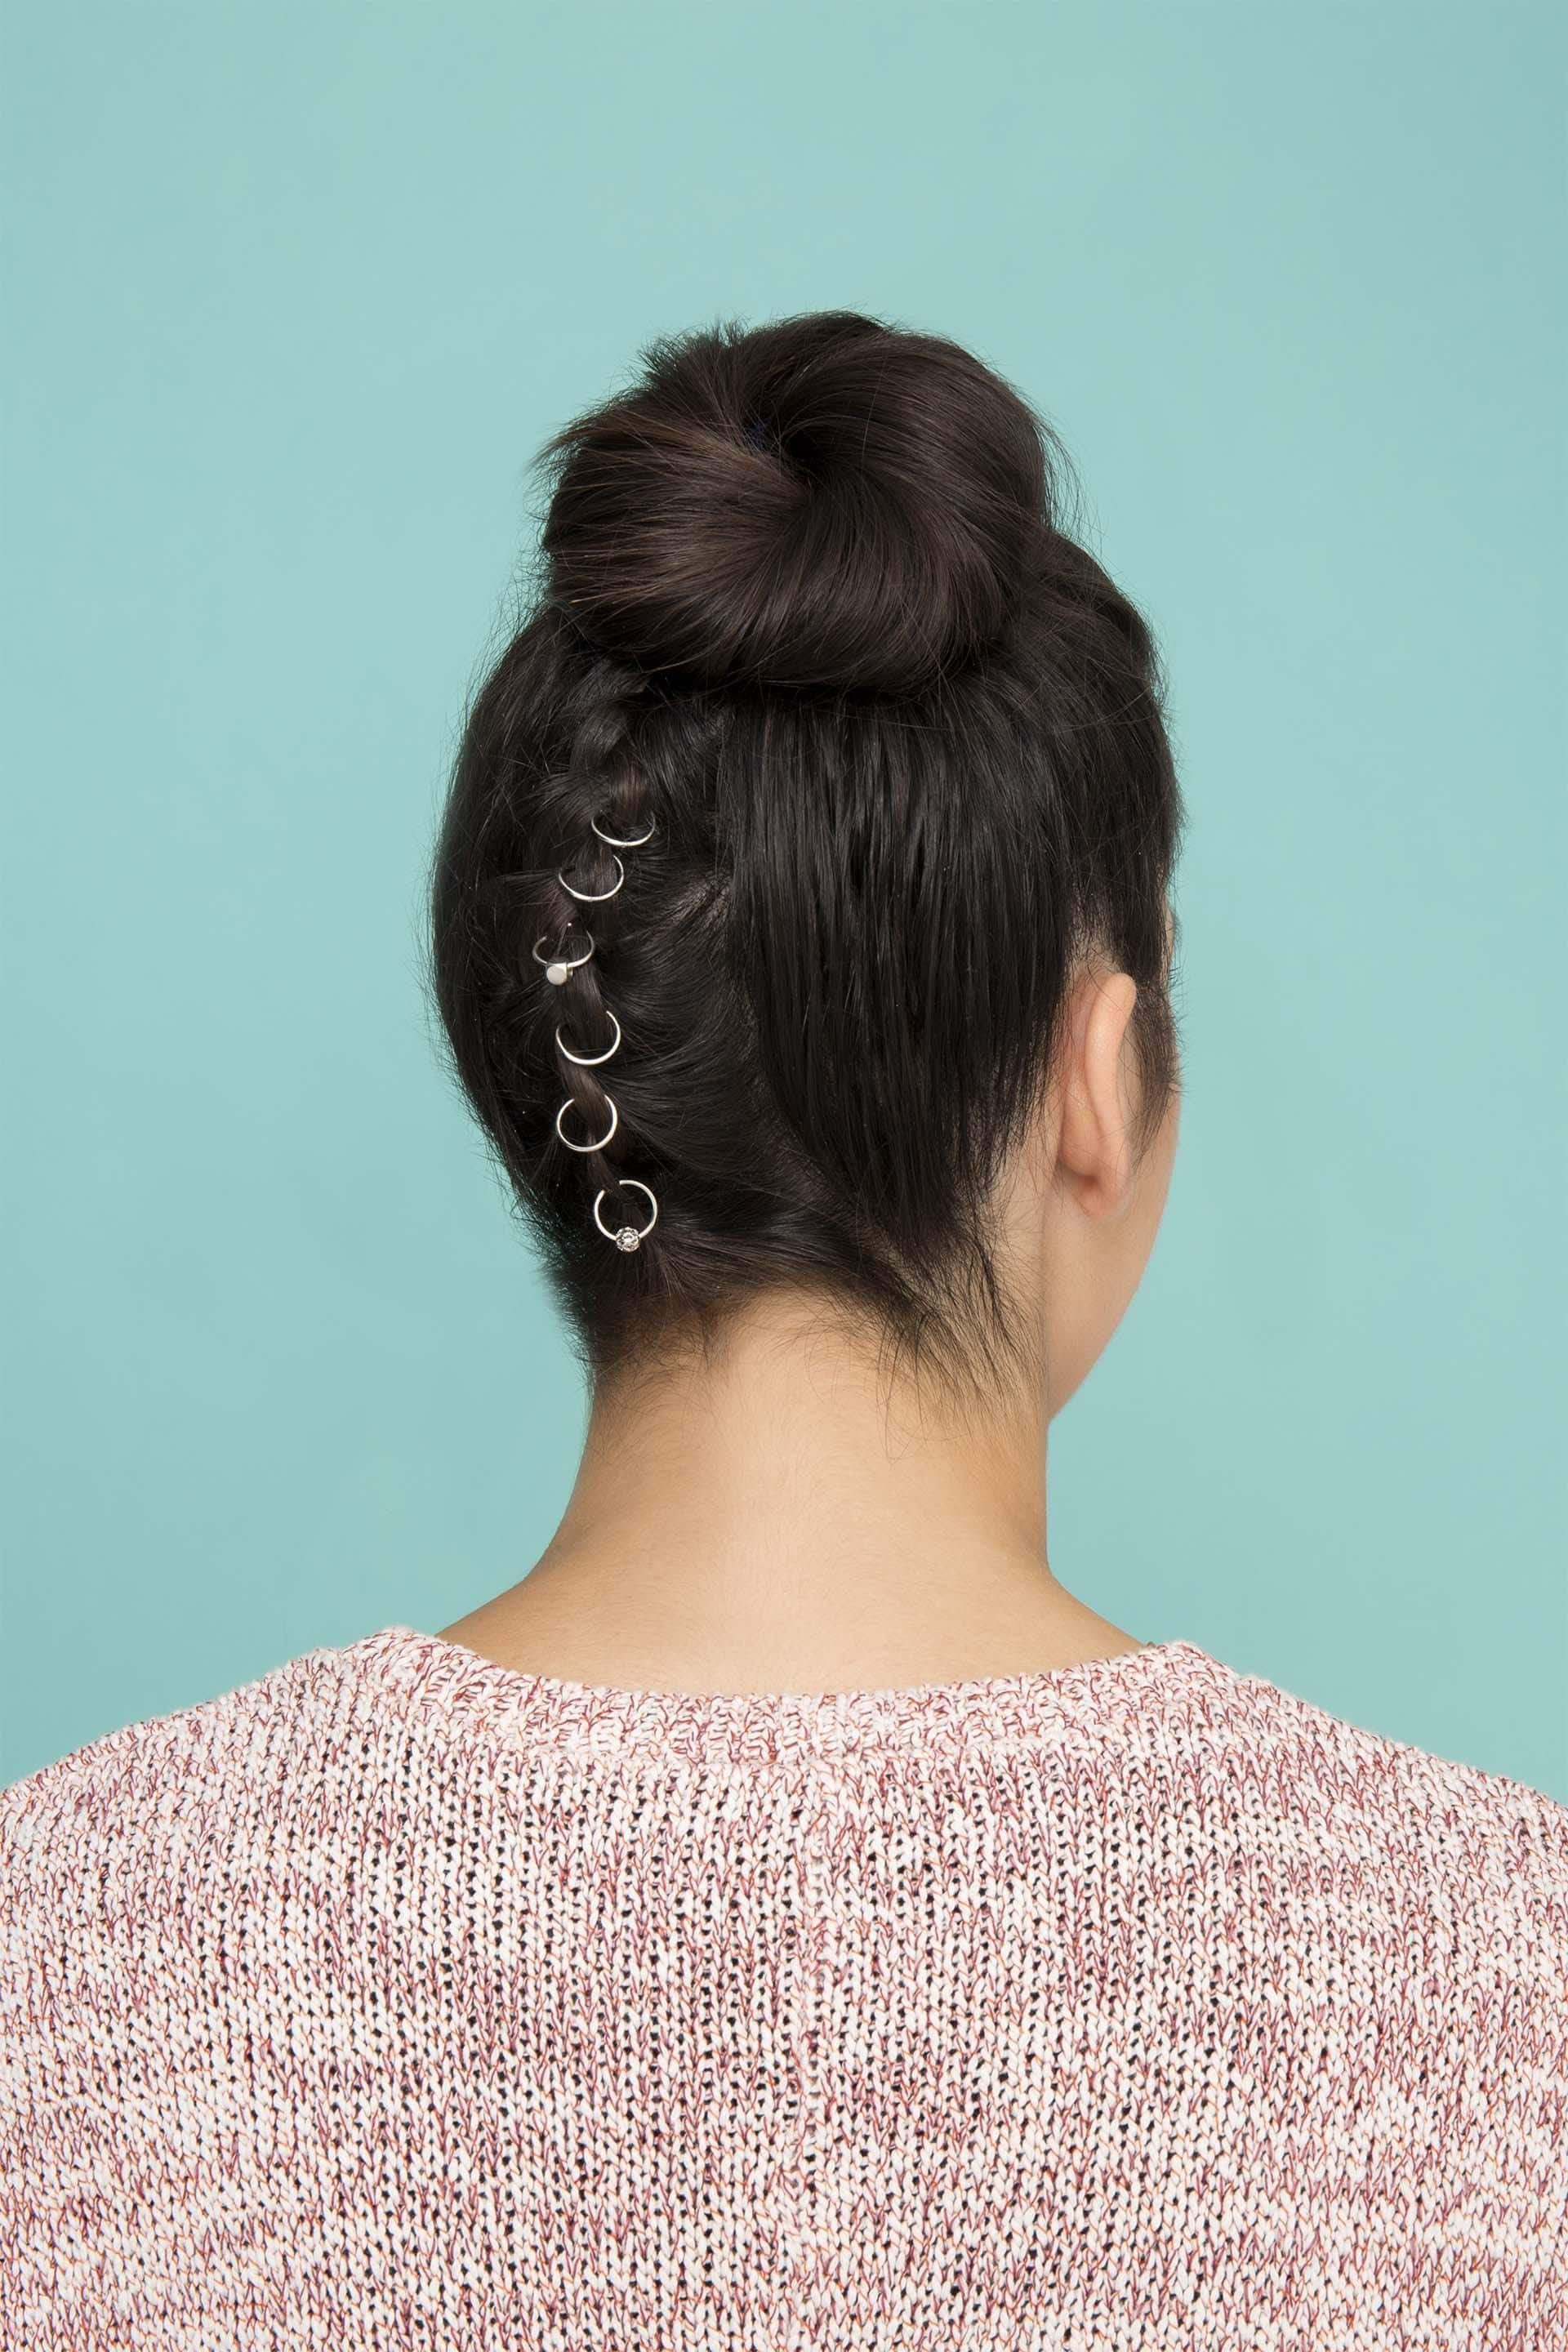 Under Braid Hairstyles: 8 Looks to Sass Up Your Week (and